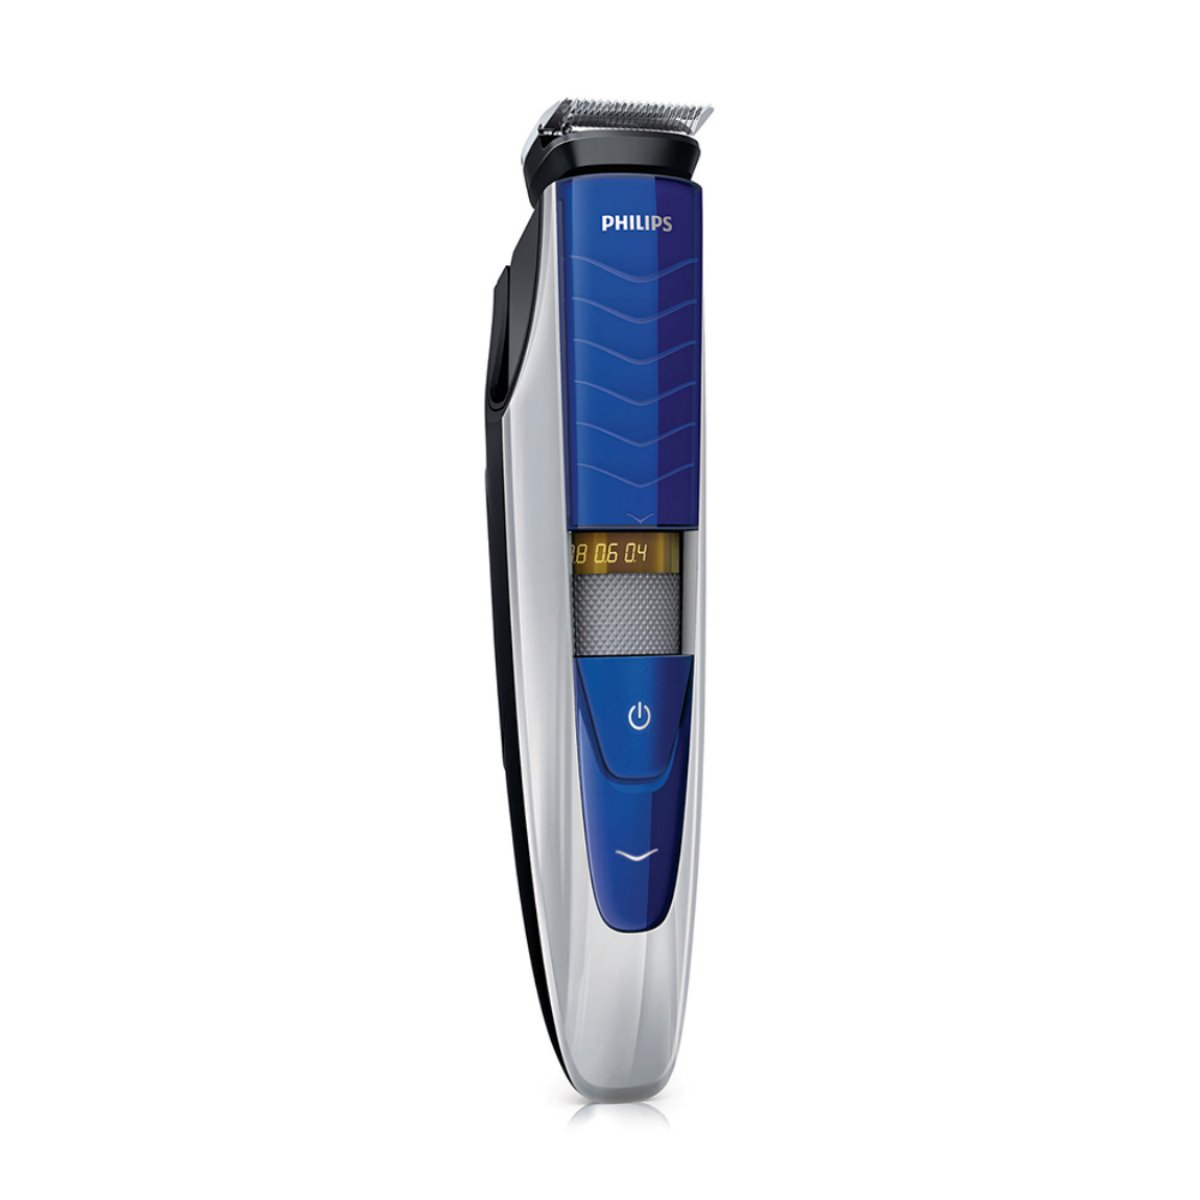 philips bt5270 beard trimmer. Black Bedroom Furniture Sets. Home Design Ideas